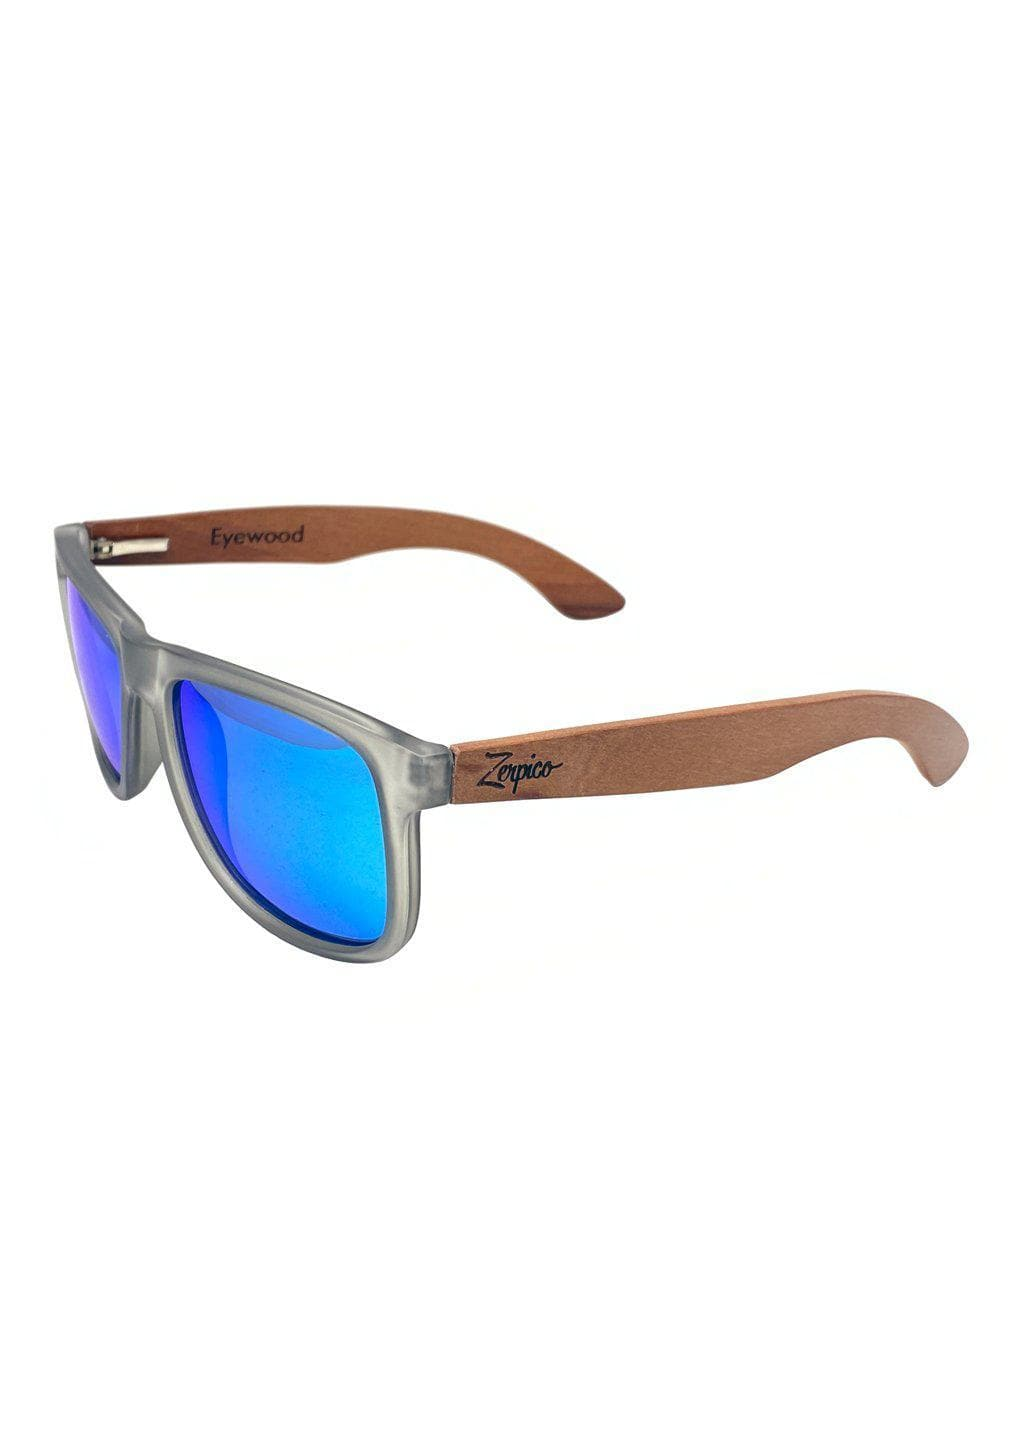 Eyewood Wayfarer - Mist - Beautiful wooden sunglasses with foggy transparent front with awesome blue mirror lenses. From the side.